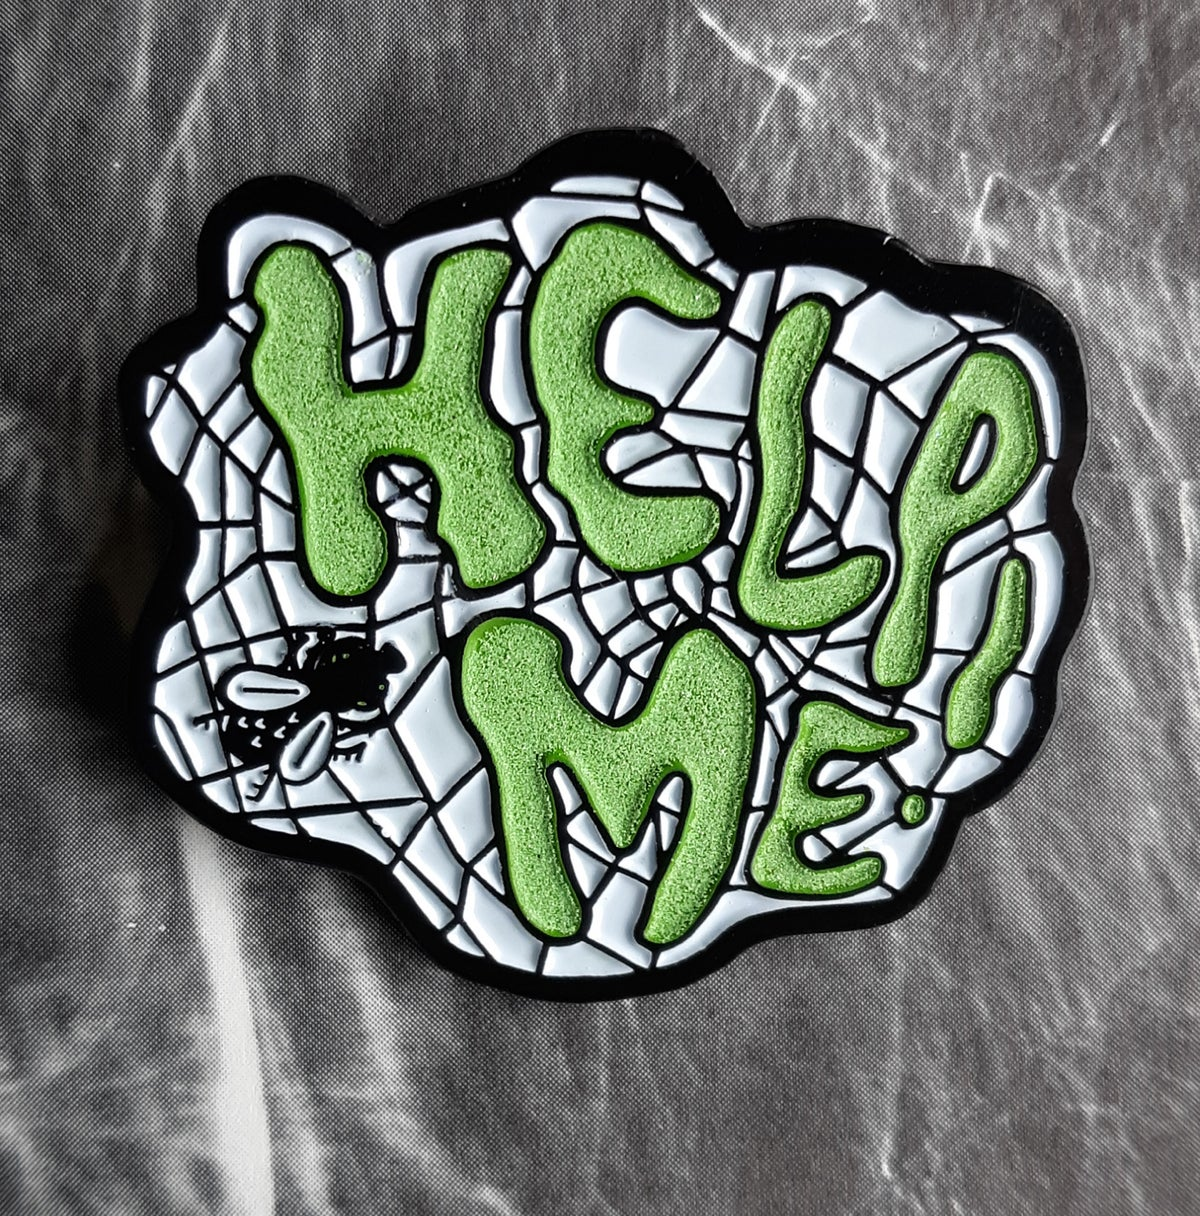 HELP ME! The Fly Glow-in-the-Dark Soft Enamel Pin